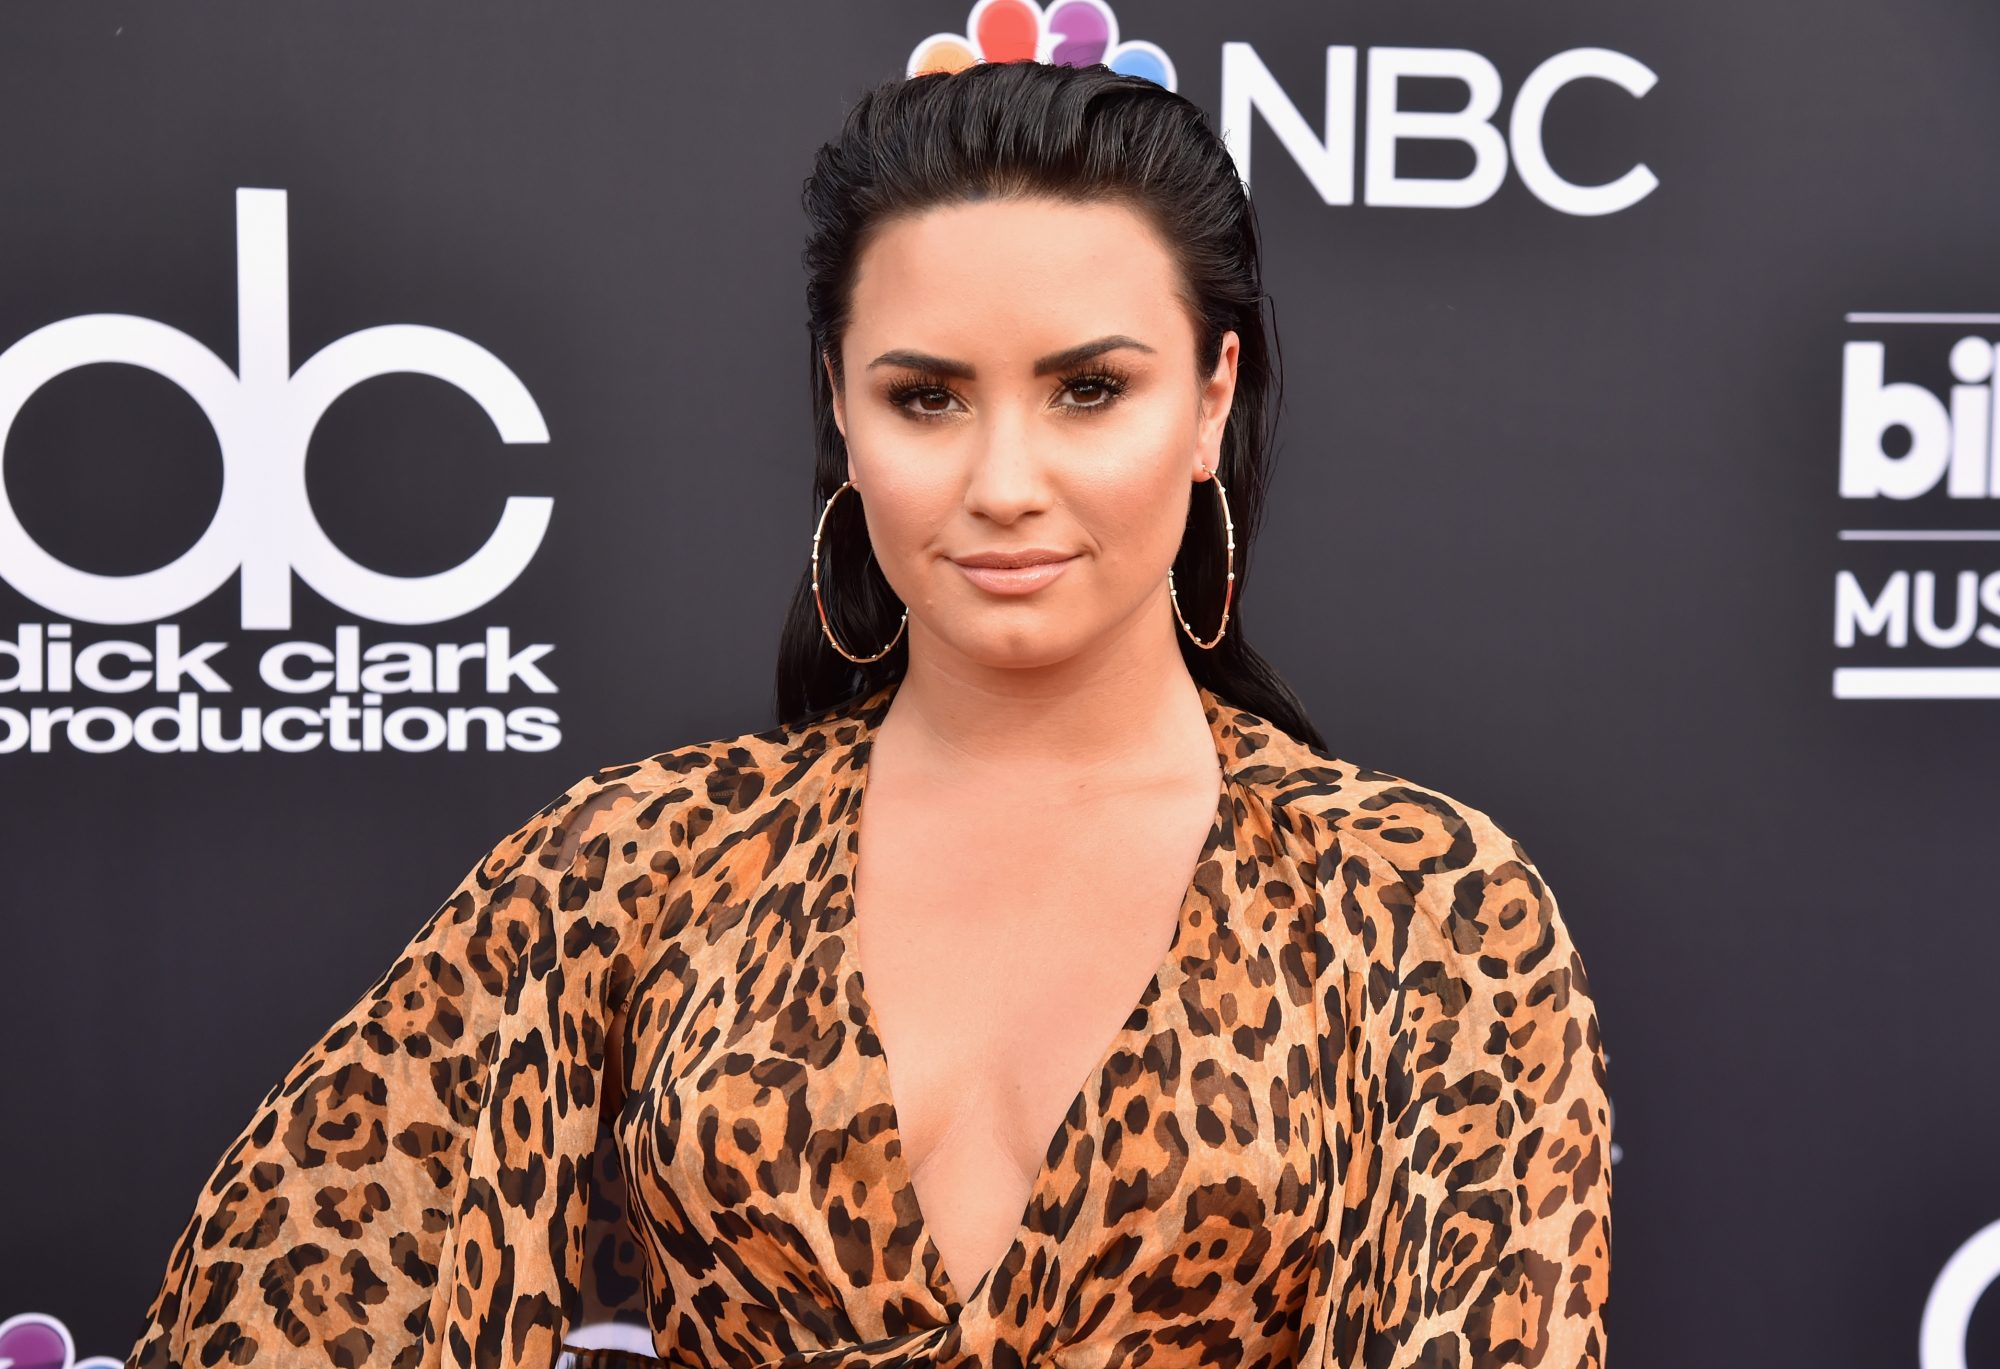 Demi Lovato Shared a Photo of Her Cellulite to Promote Body Posivity